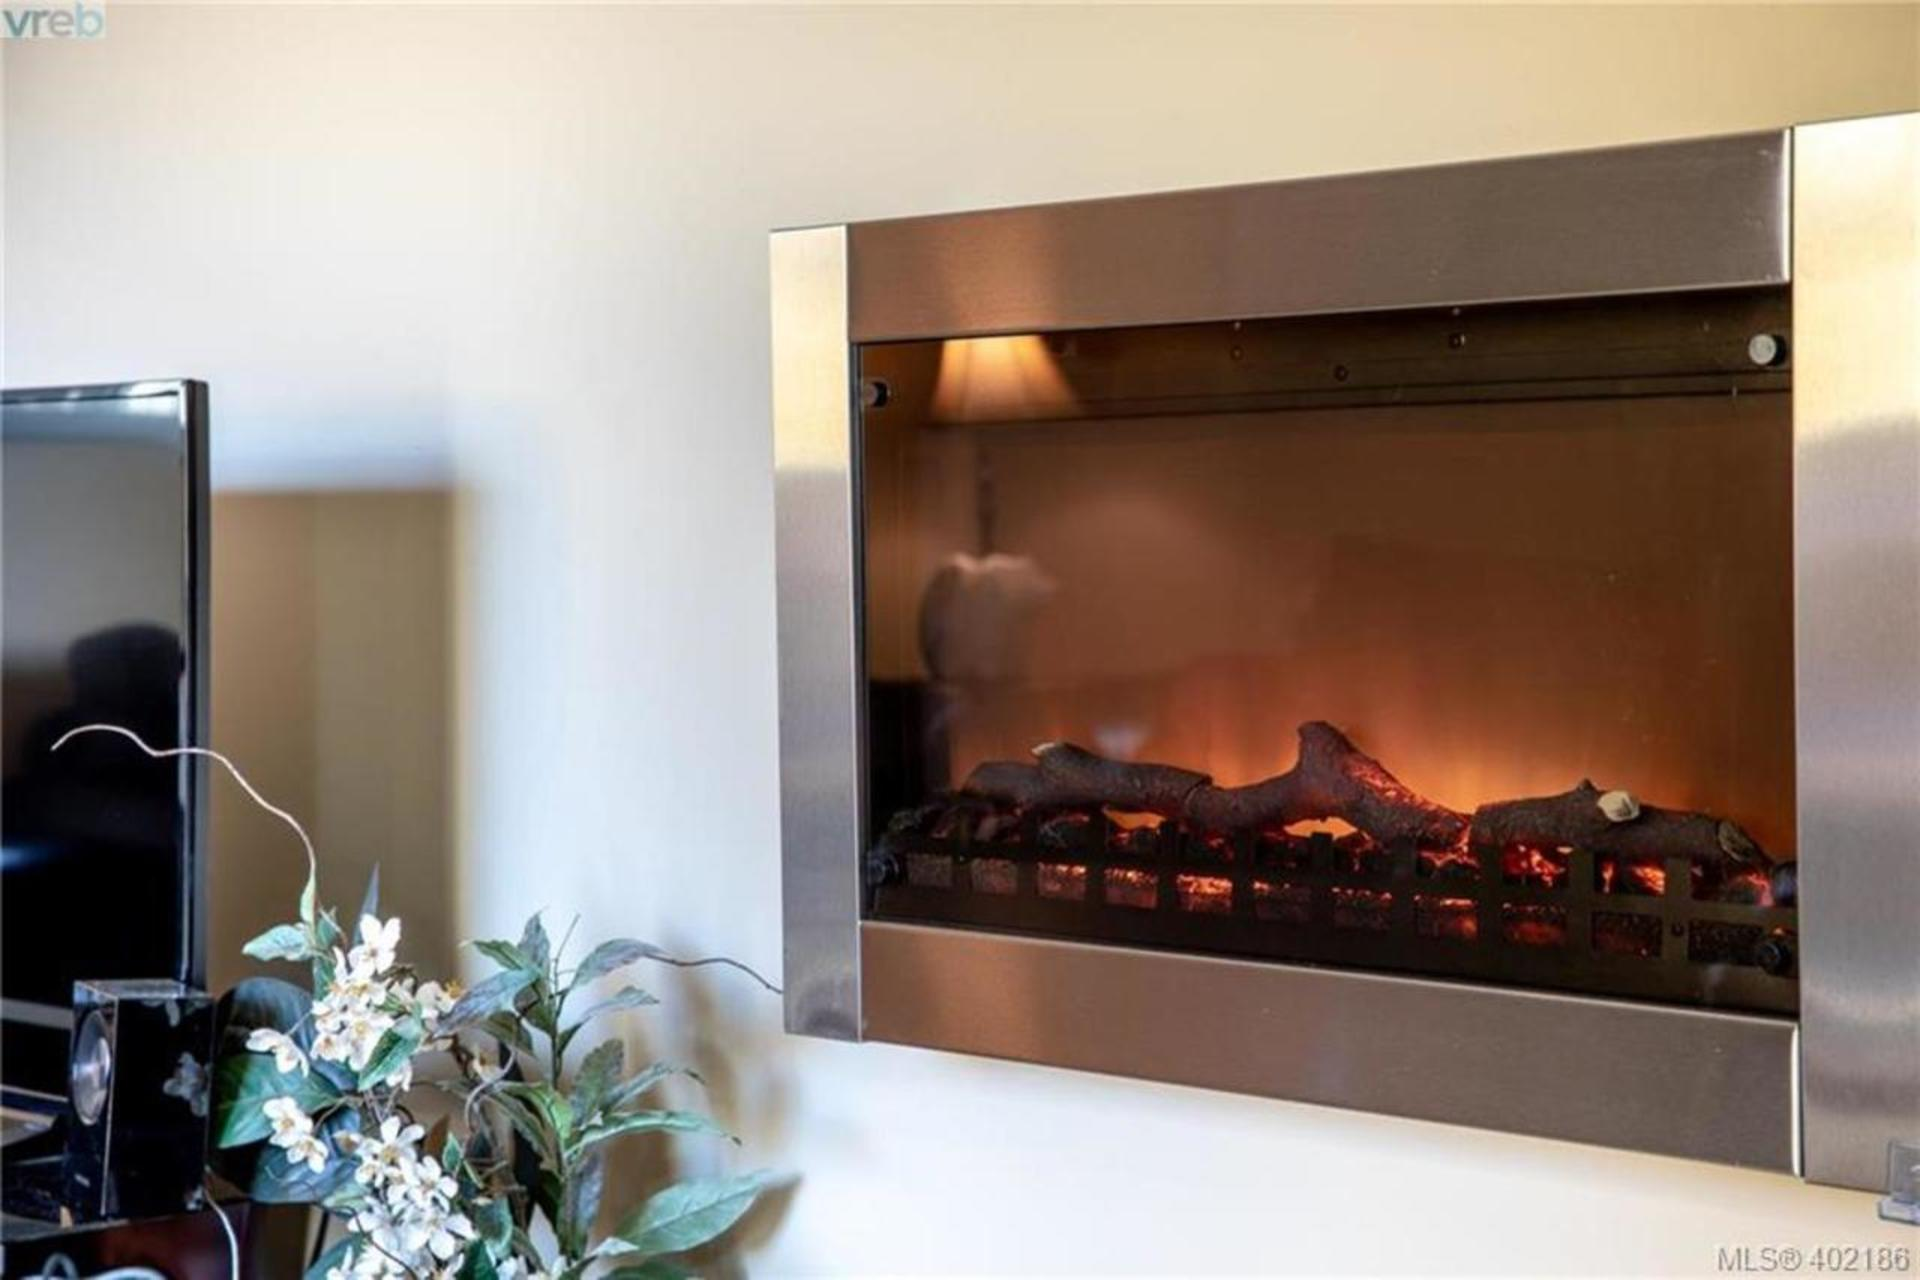 Wall Mount Electric Fireplace at 1545 North Dairy Road, Oaklands, Victoria